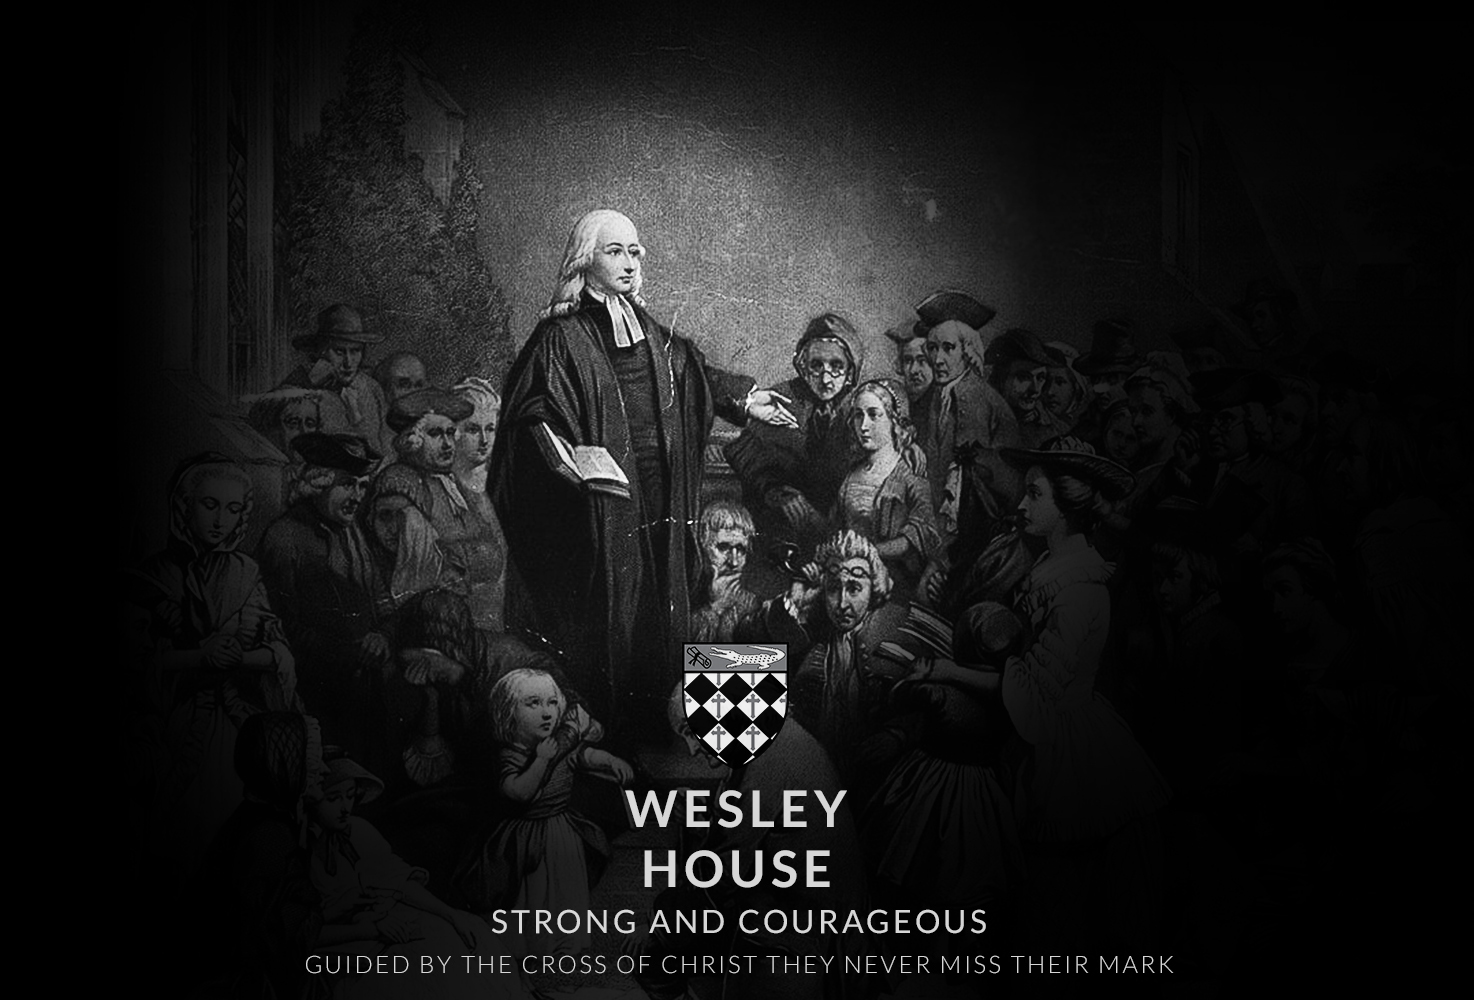 Wesley House Aw1 Reverse